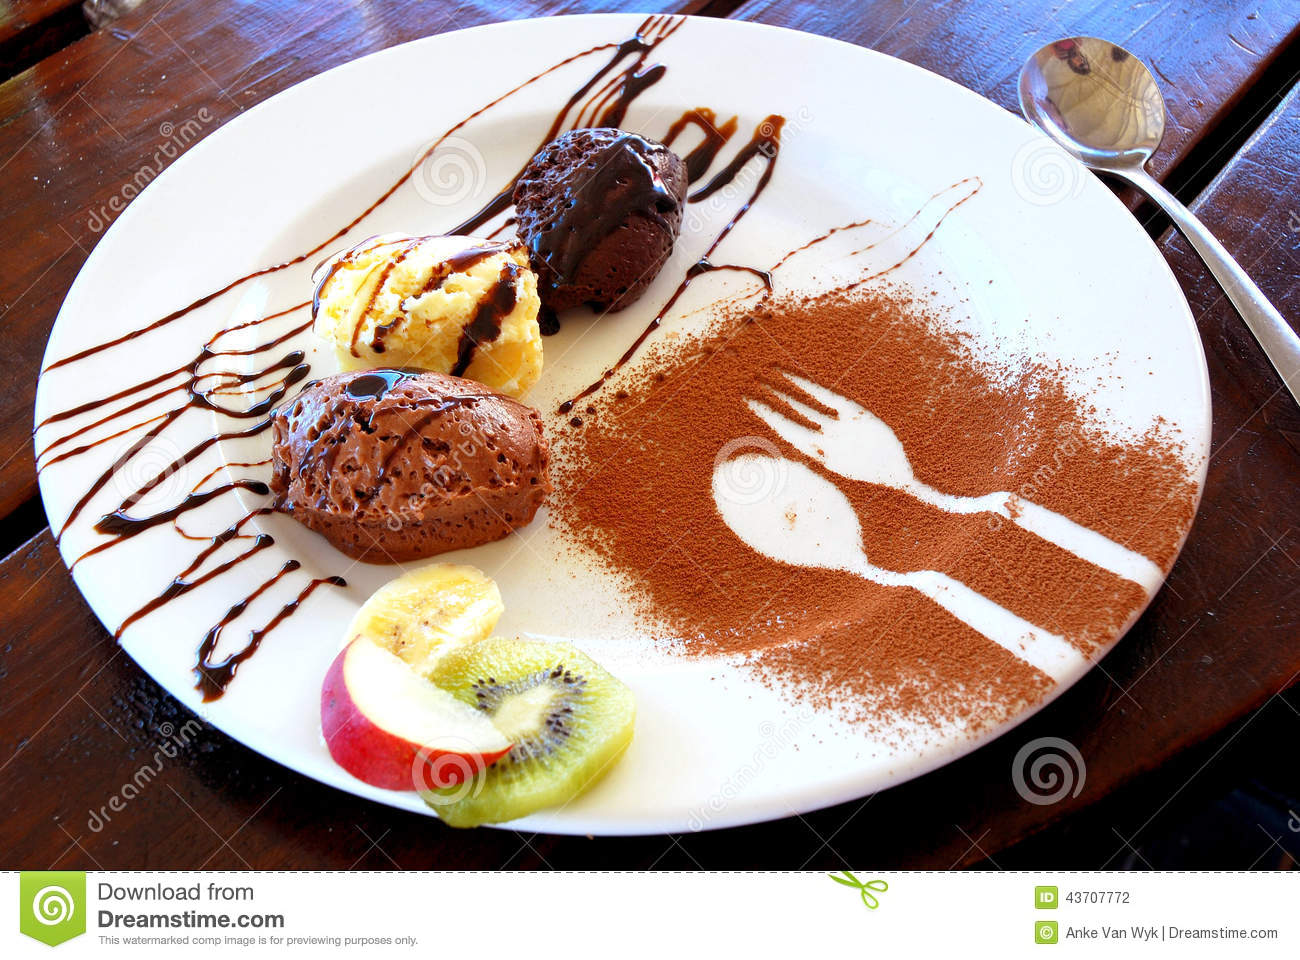 Chocolate mousse dessert